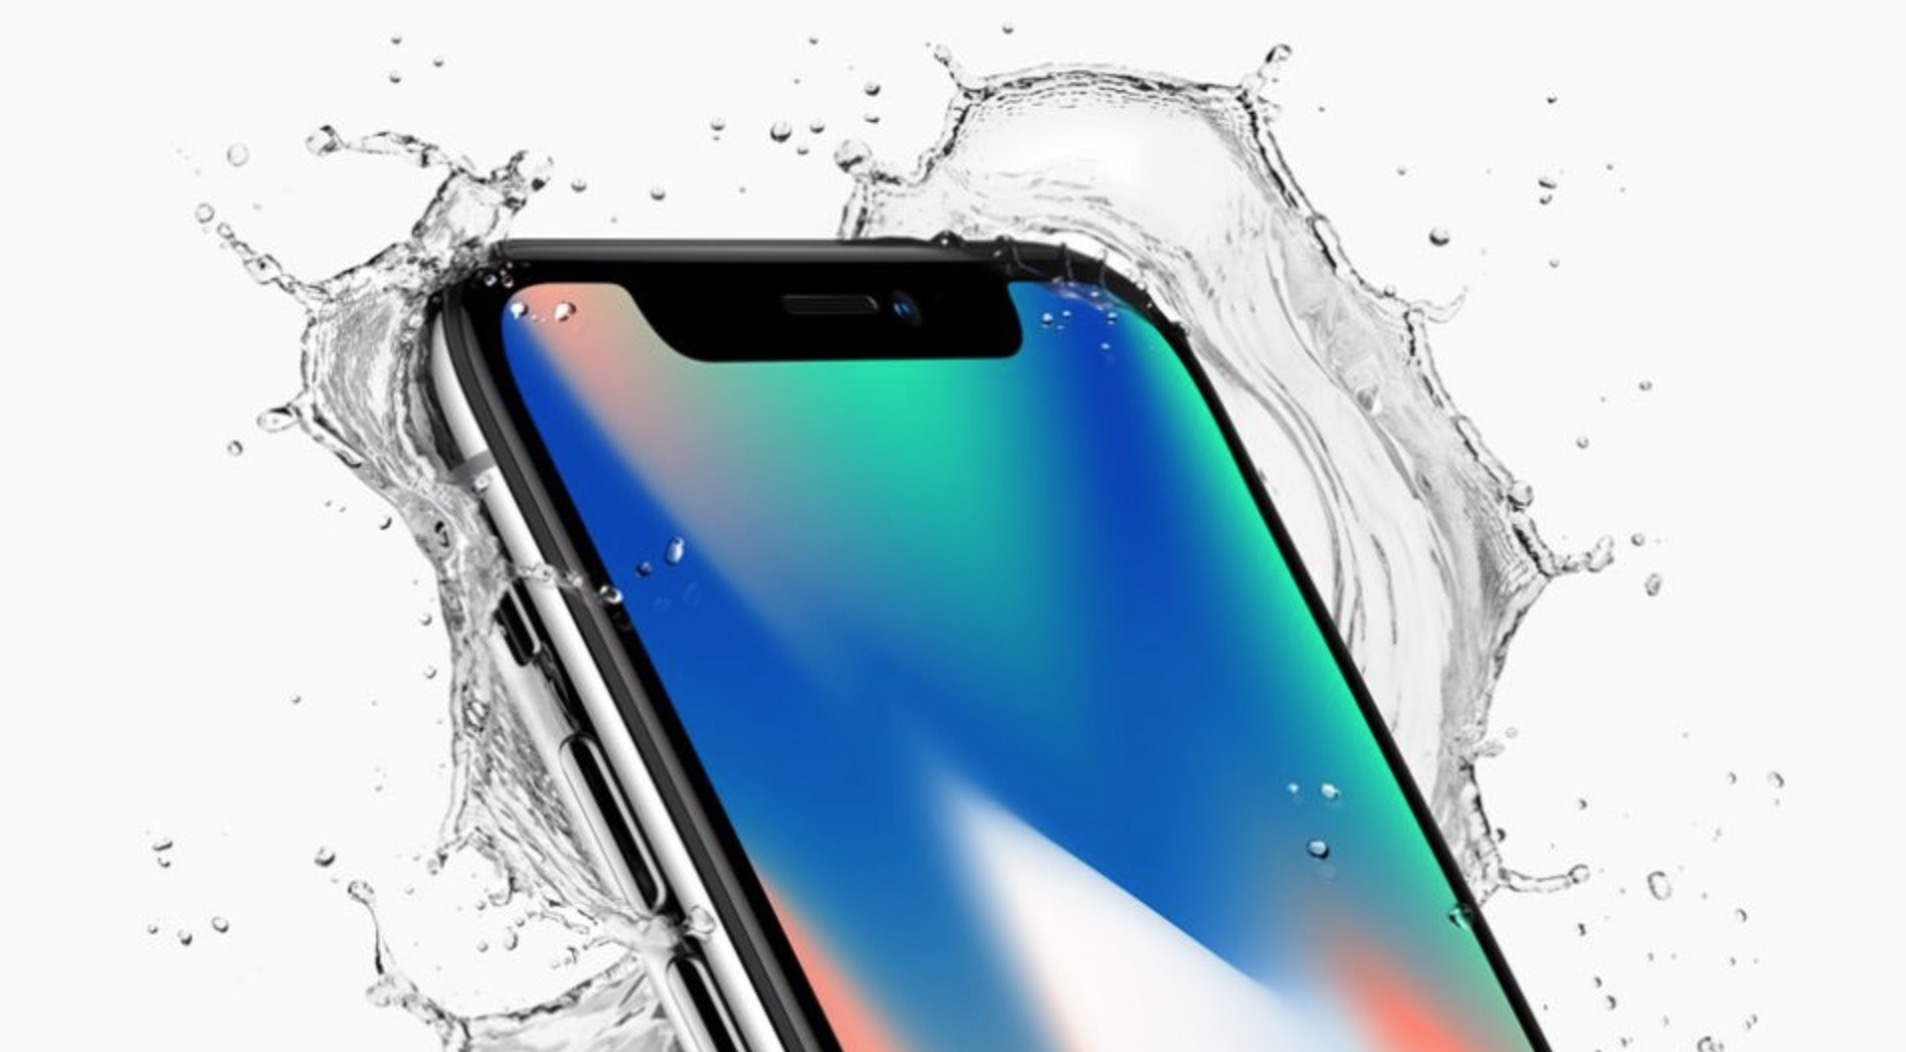 Processore A11 Bionic di iPhone X